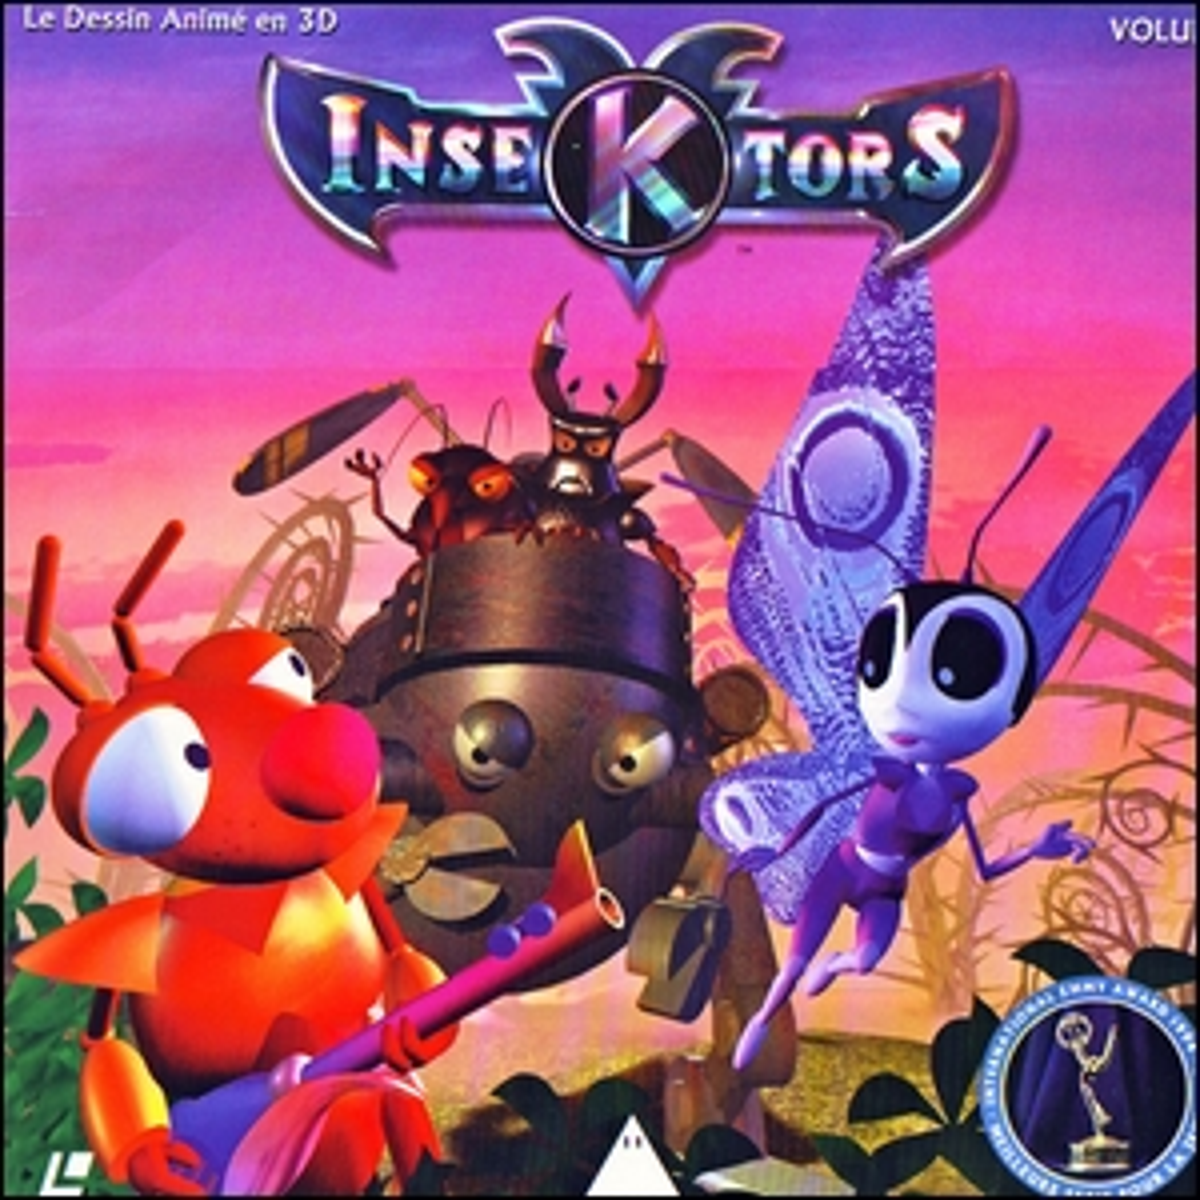 The cover of first volume of Insektors.